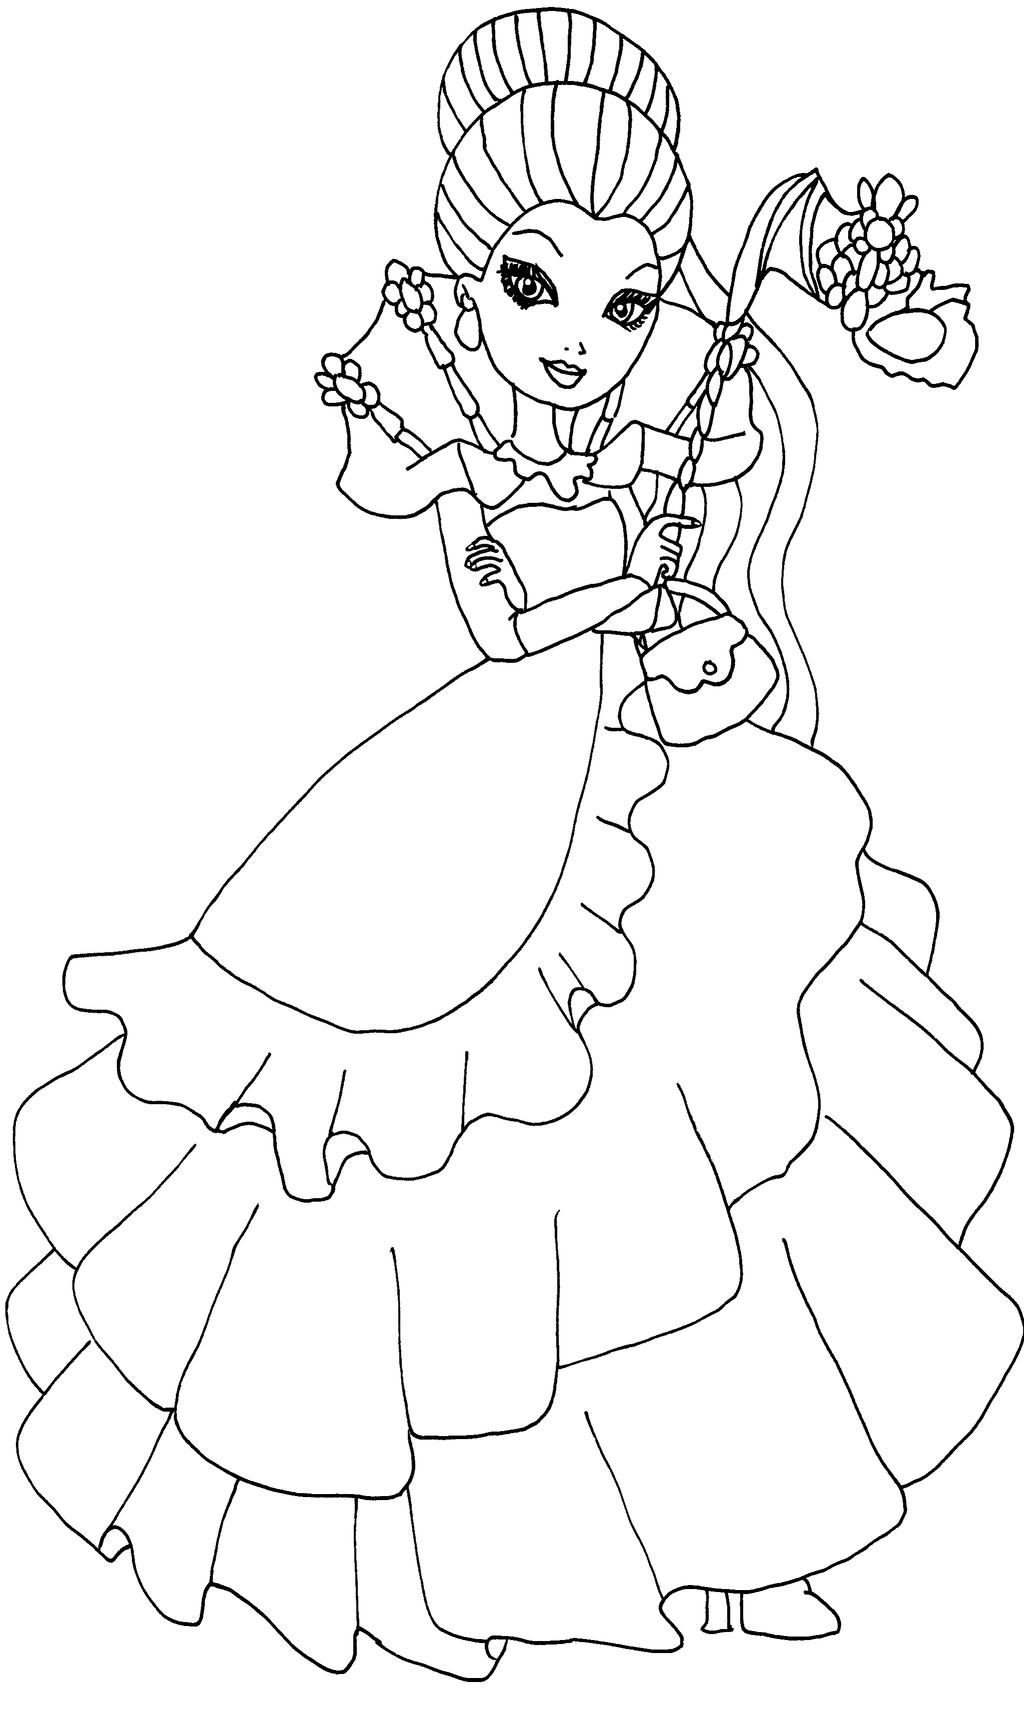 ever after high coloring pages ever after high coloring pages by elfkena on deviantart pages ever after high coloring